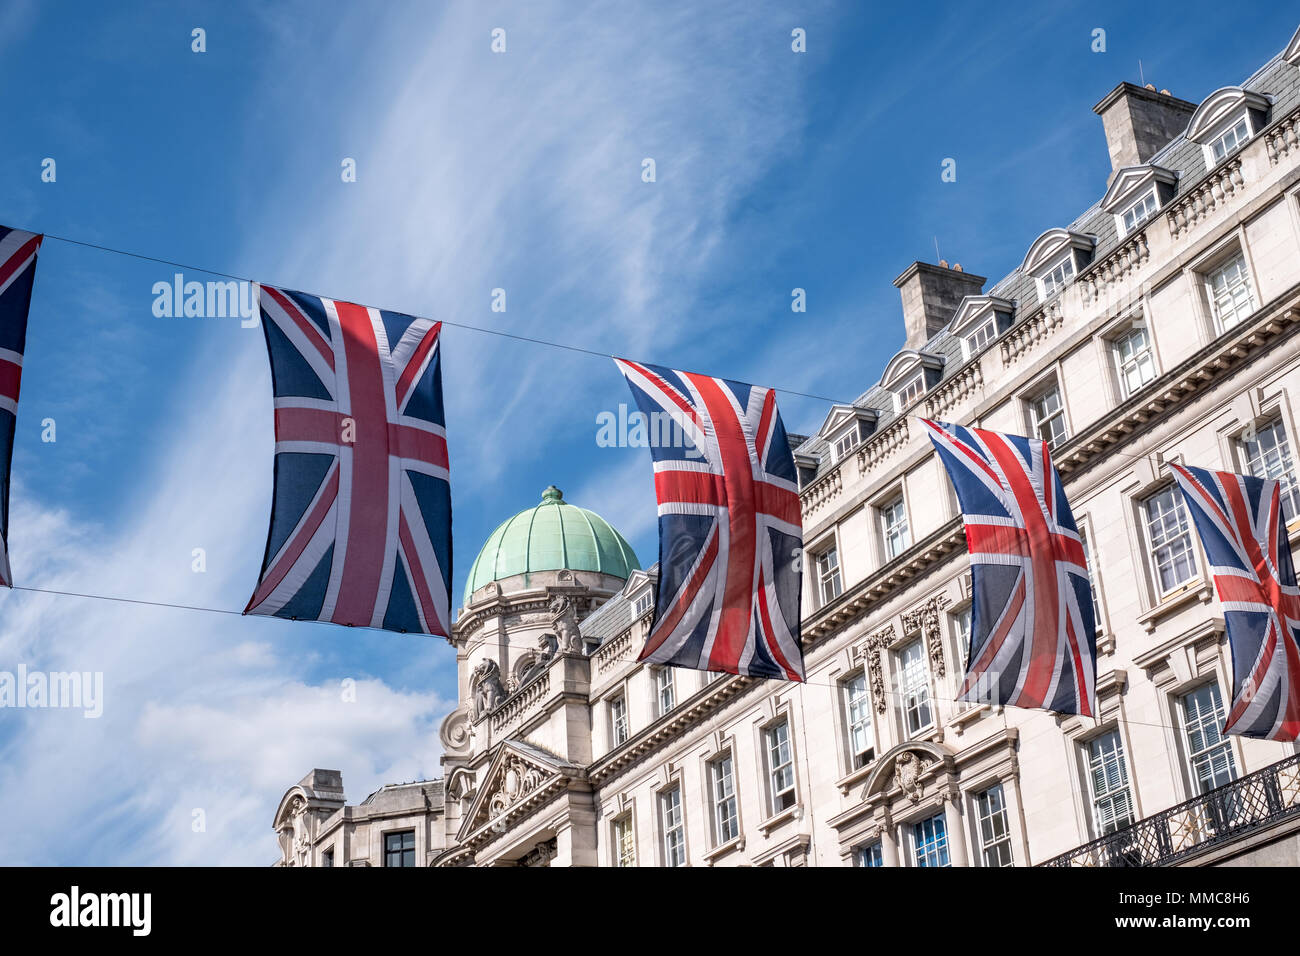 Close up of buildings on Regent Street London with row of British flags to celebrate the Royal Wedding of Prince Harry to Meghan Markle. Stock Photo